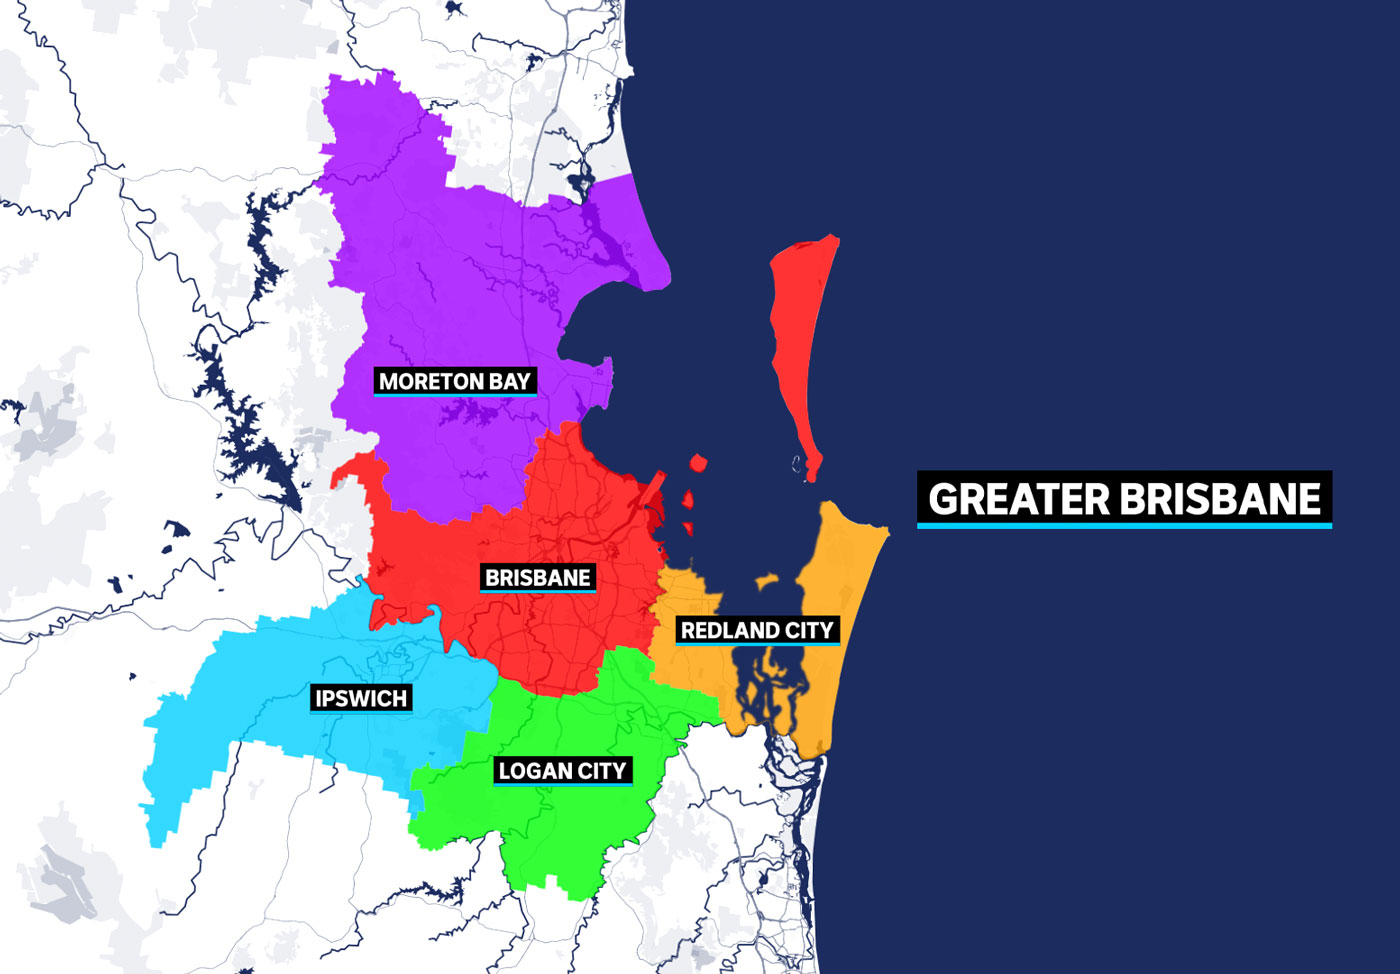 A graphic showing the local government areas of Brisbane, Logan, Redland City, Ipswich and Moreton Bay.